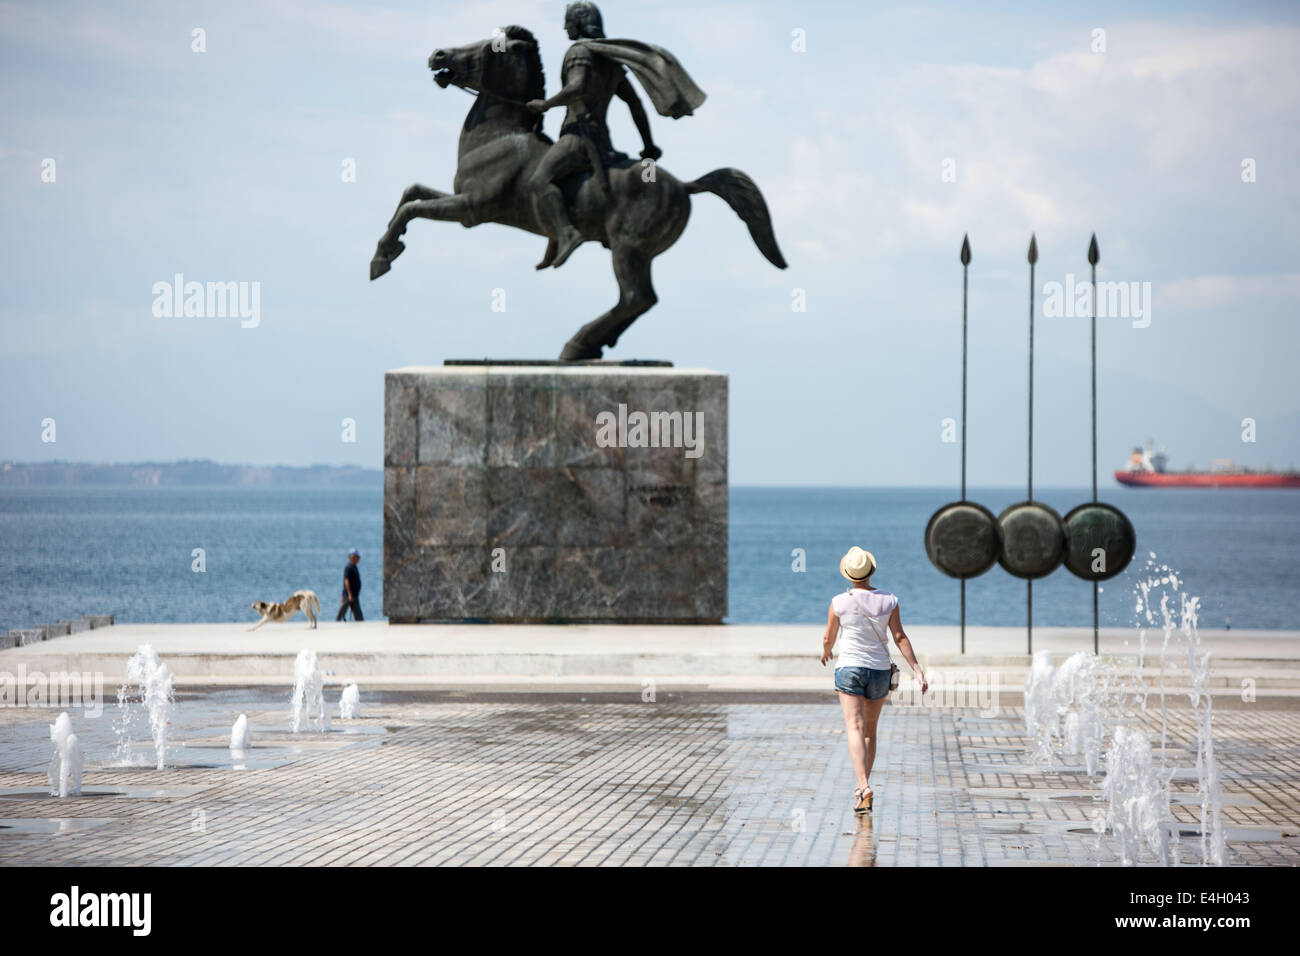 Thessaloniki, Greece. 11th July 2014. Tourist in front of a statue of Alexander the Great and his horse Bucephalus, - Stock Image